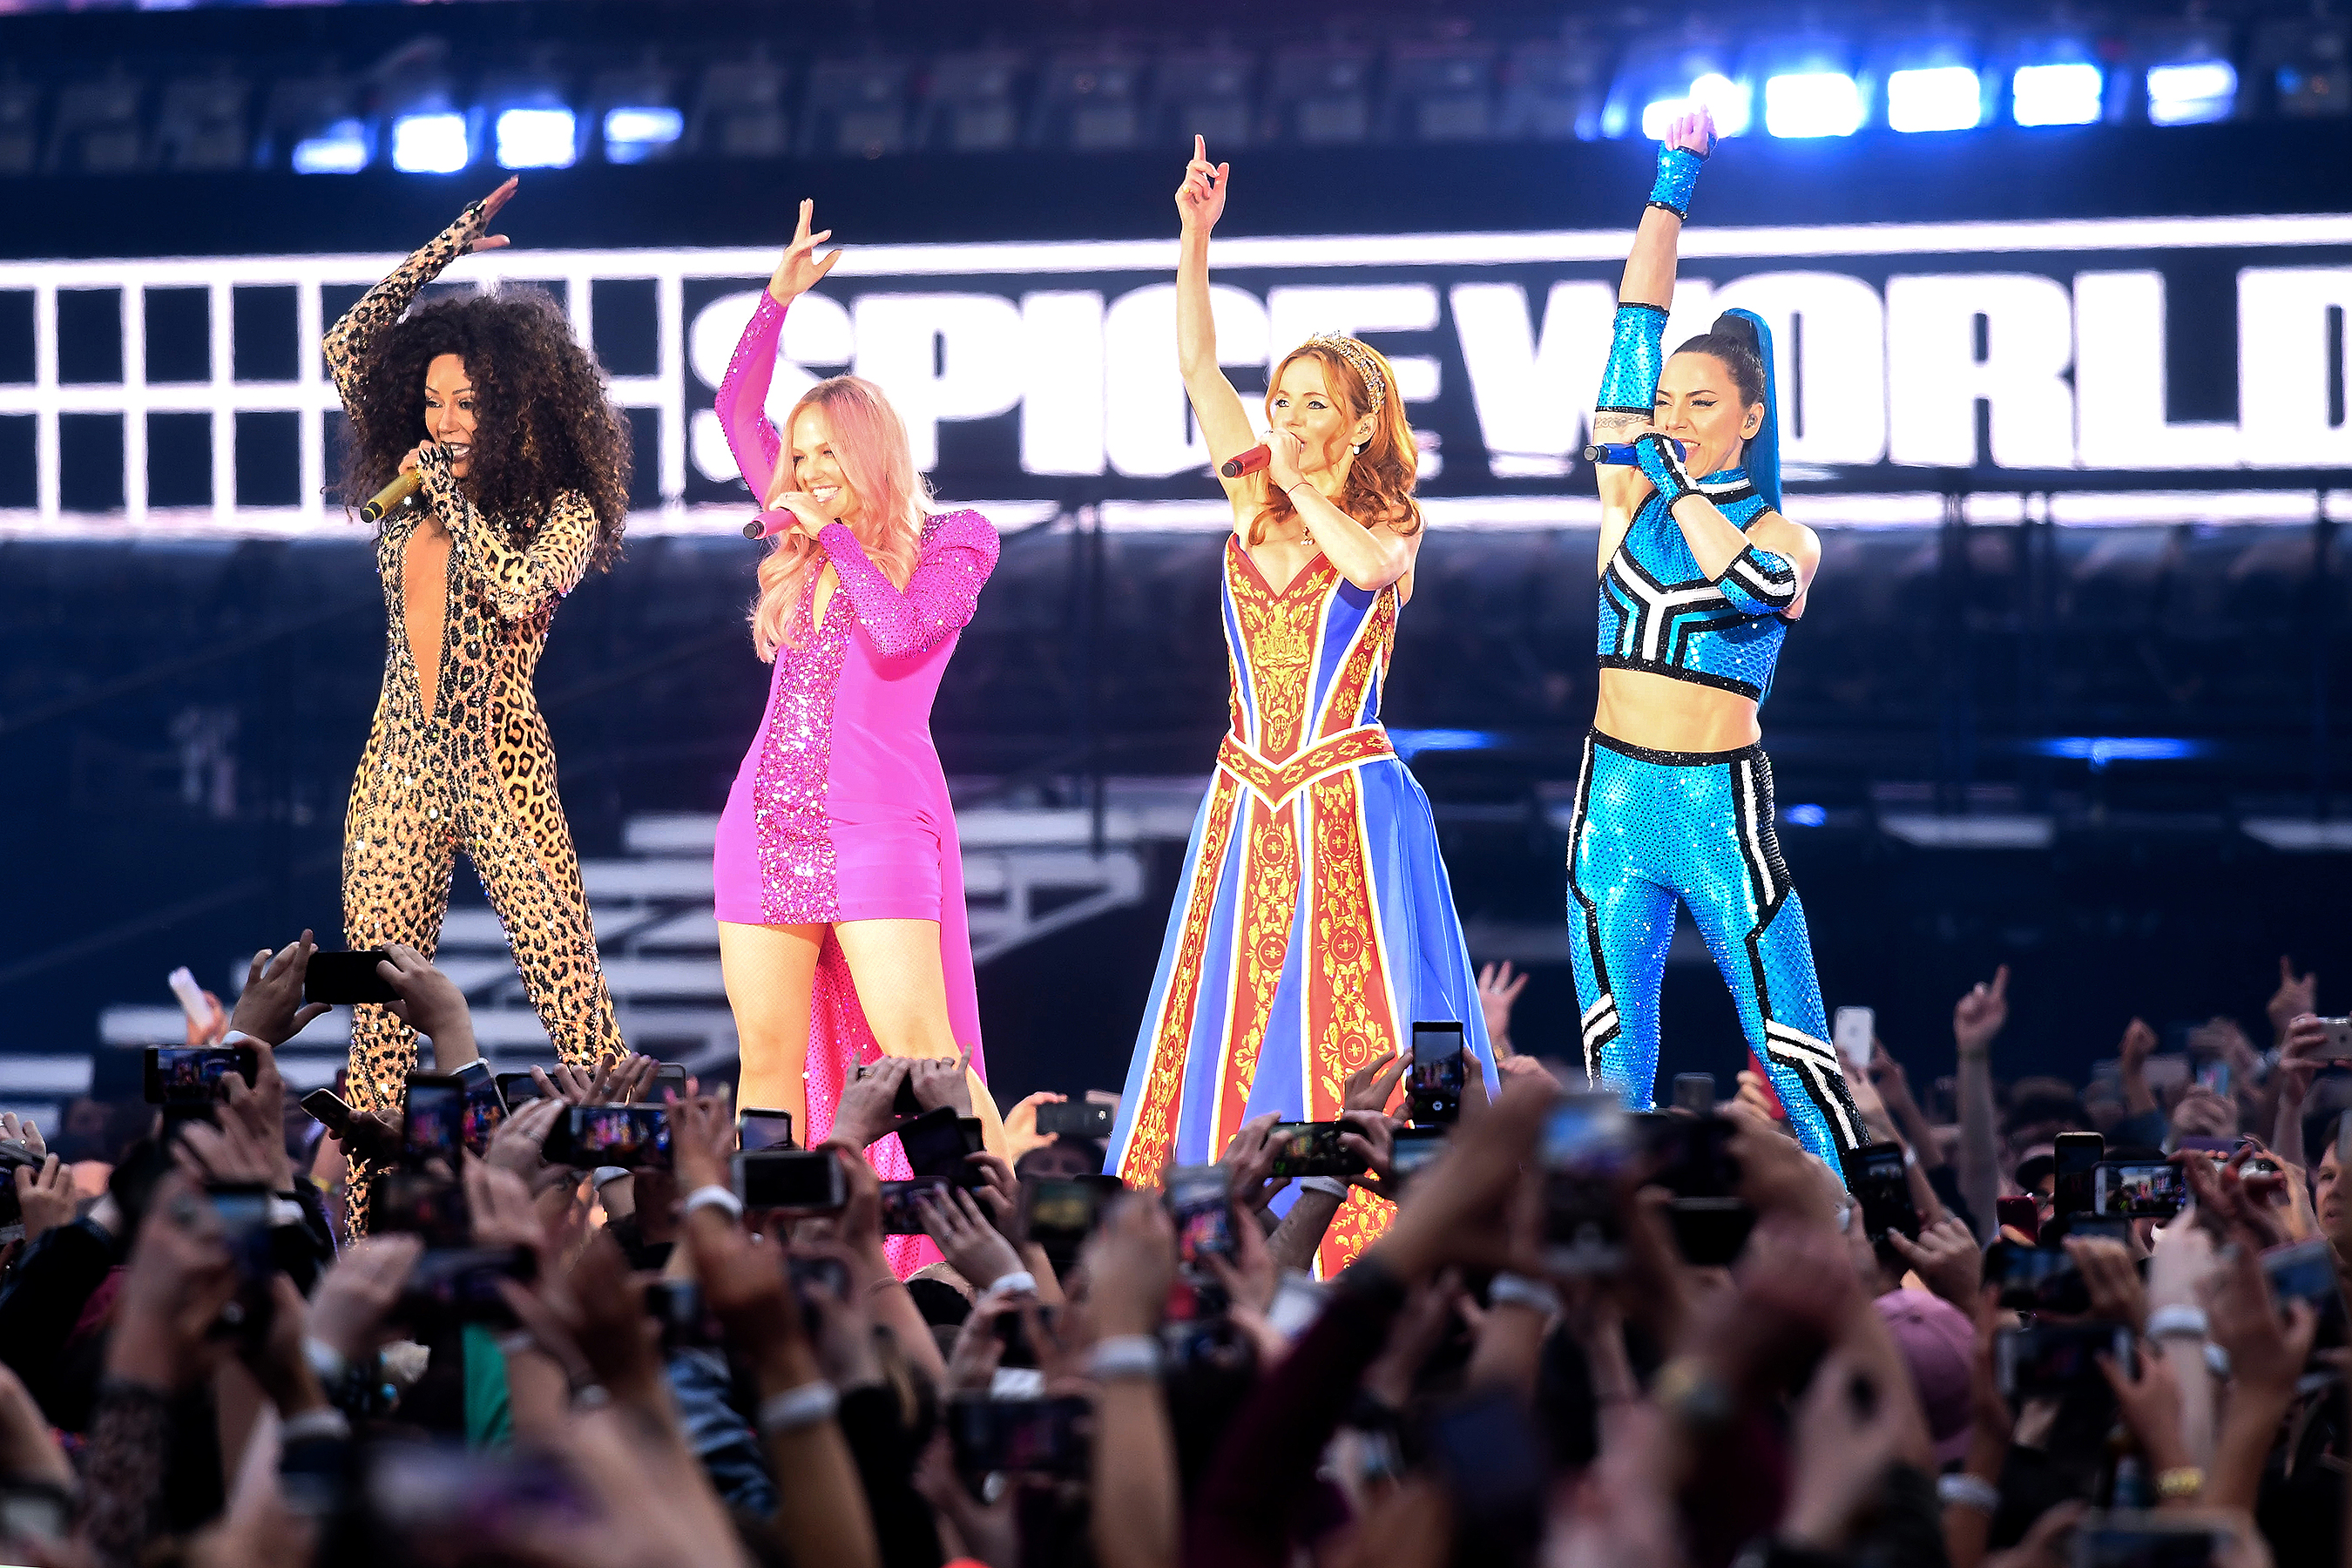 Spice Girls open their reunion tour with a message for LGBTQ fans